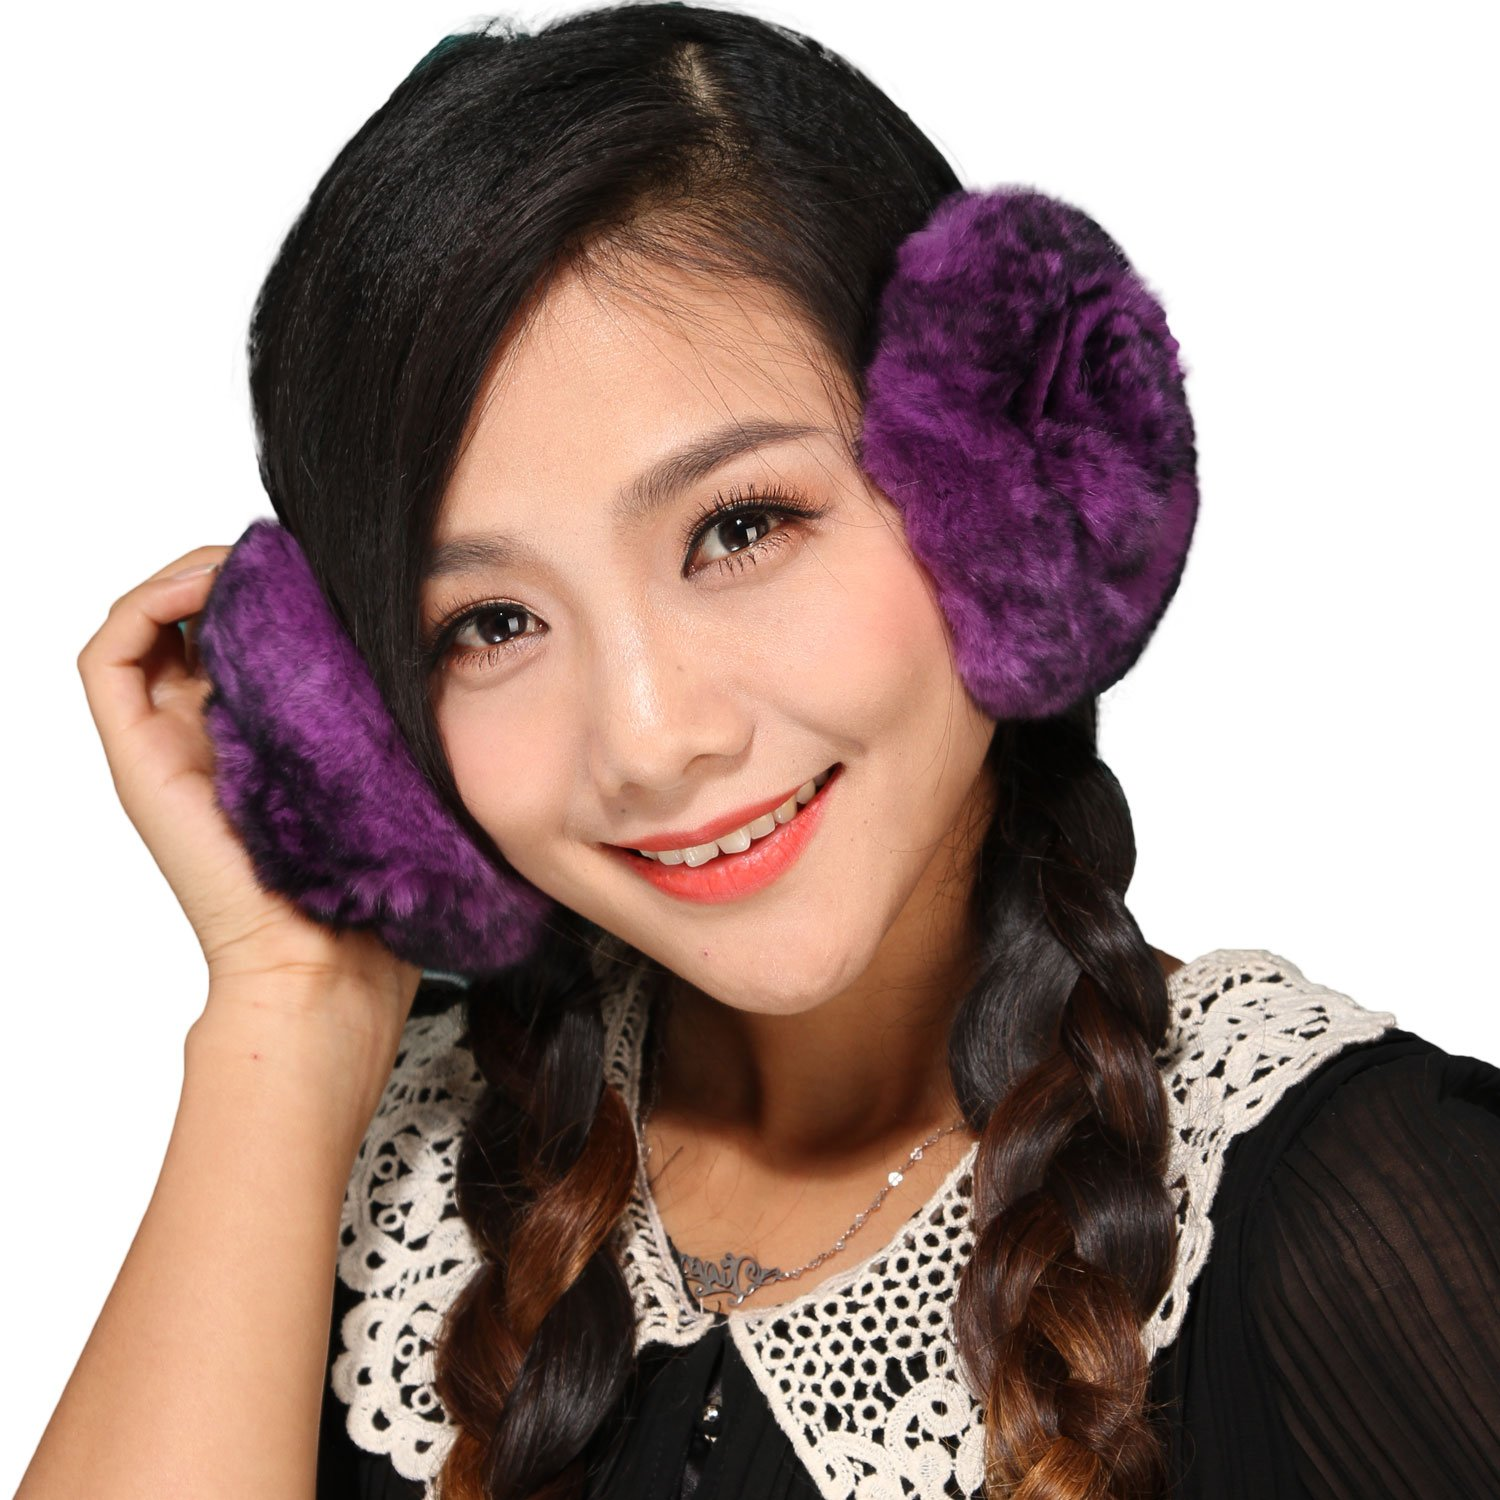 Mandy's Girl Lady's Fall Winter Rex Rabbit Fur Earmuffs